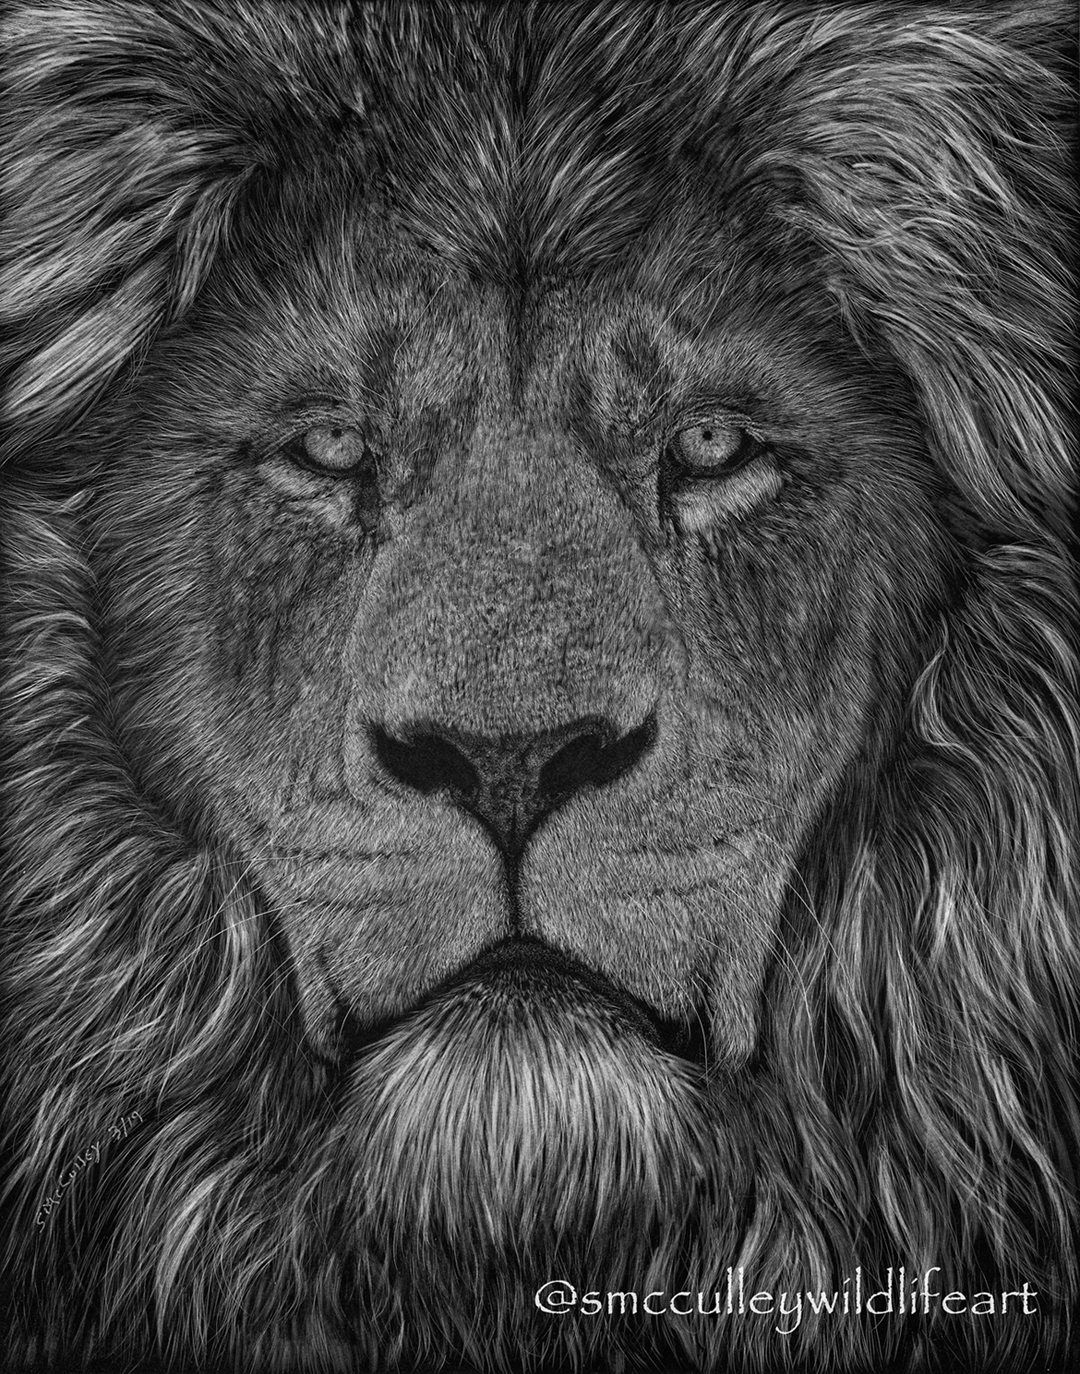 """The look"" (Lion) 8 x 10 or 11 x 14"" print sizes"